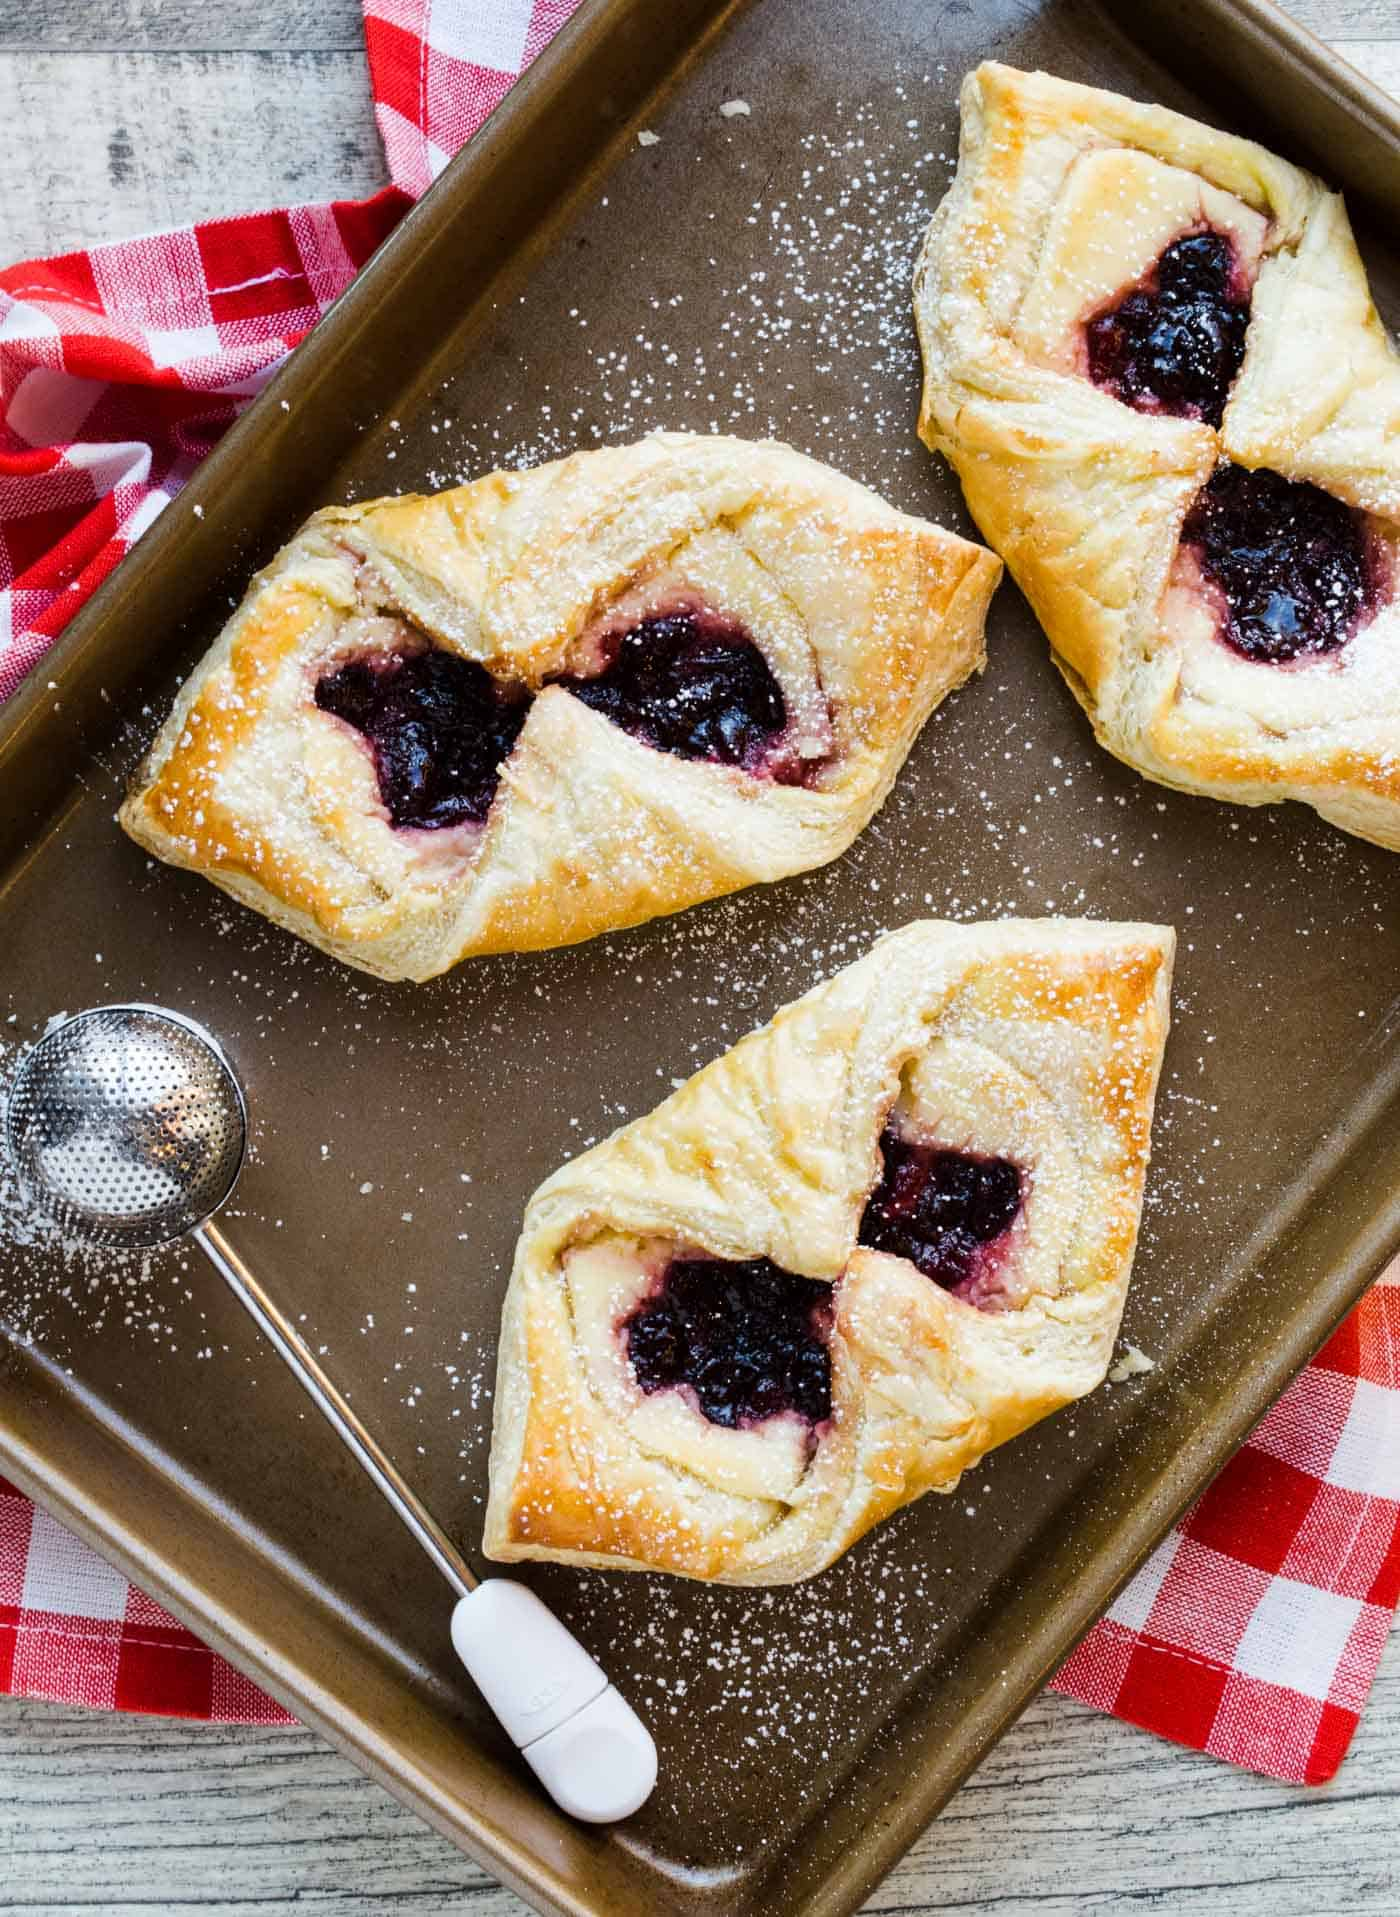 Danish don't have to be just for special occasions! This recipe for Easy Cherry Cream Cheese Danish is conveniently made with frozen puff pastry dough.